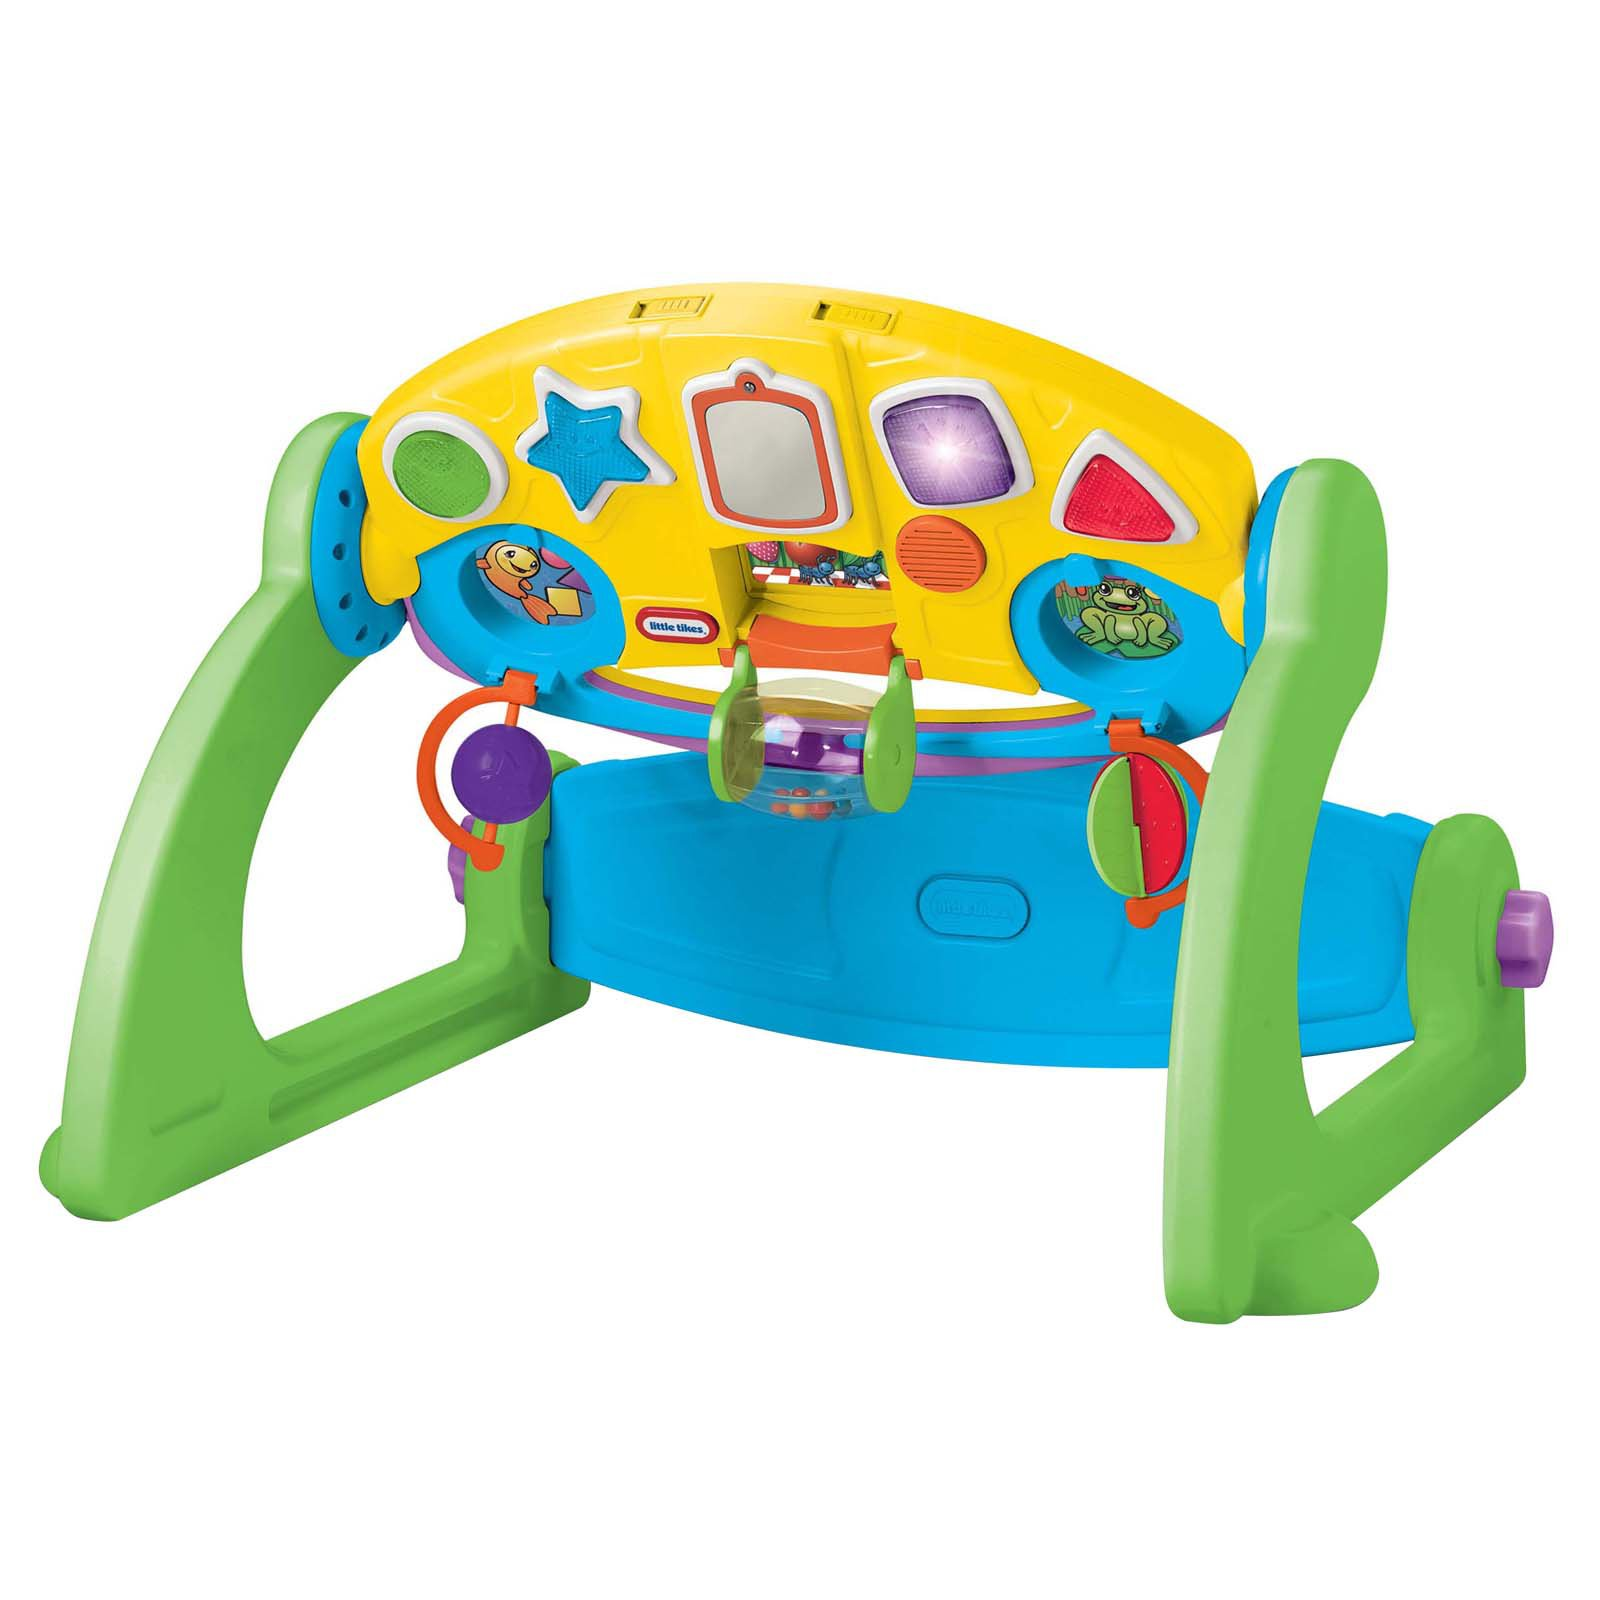 Little Tikes 5-in-1 Adjustable Gym by Little Tikes